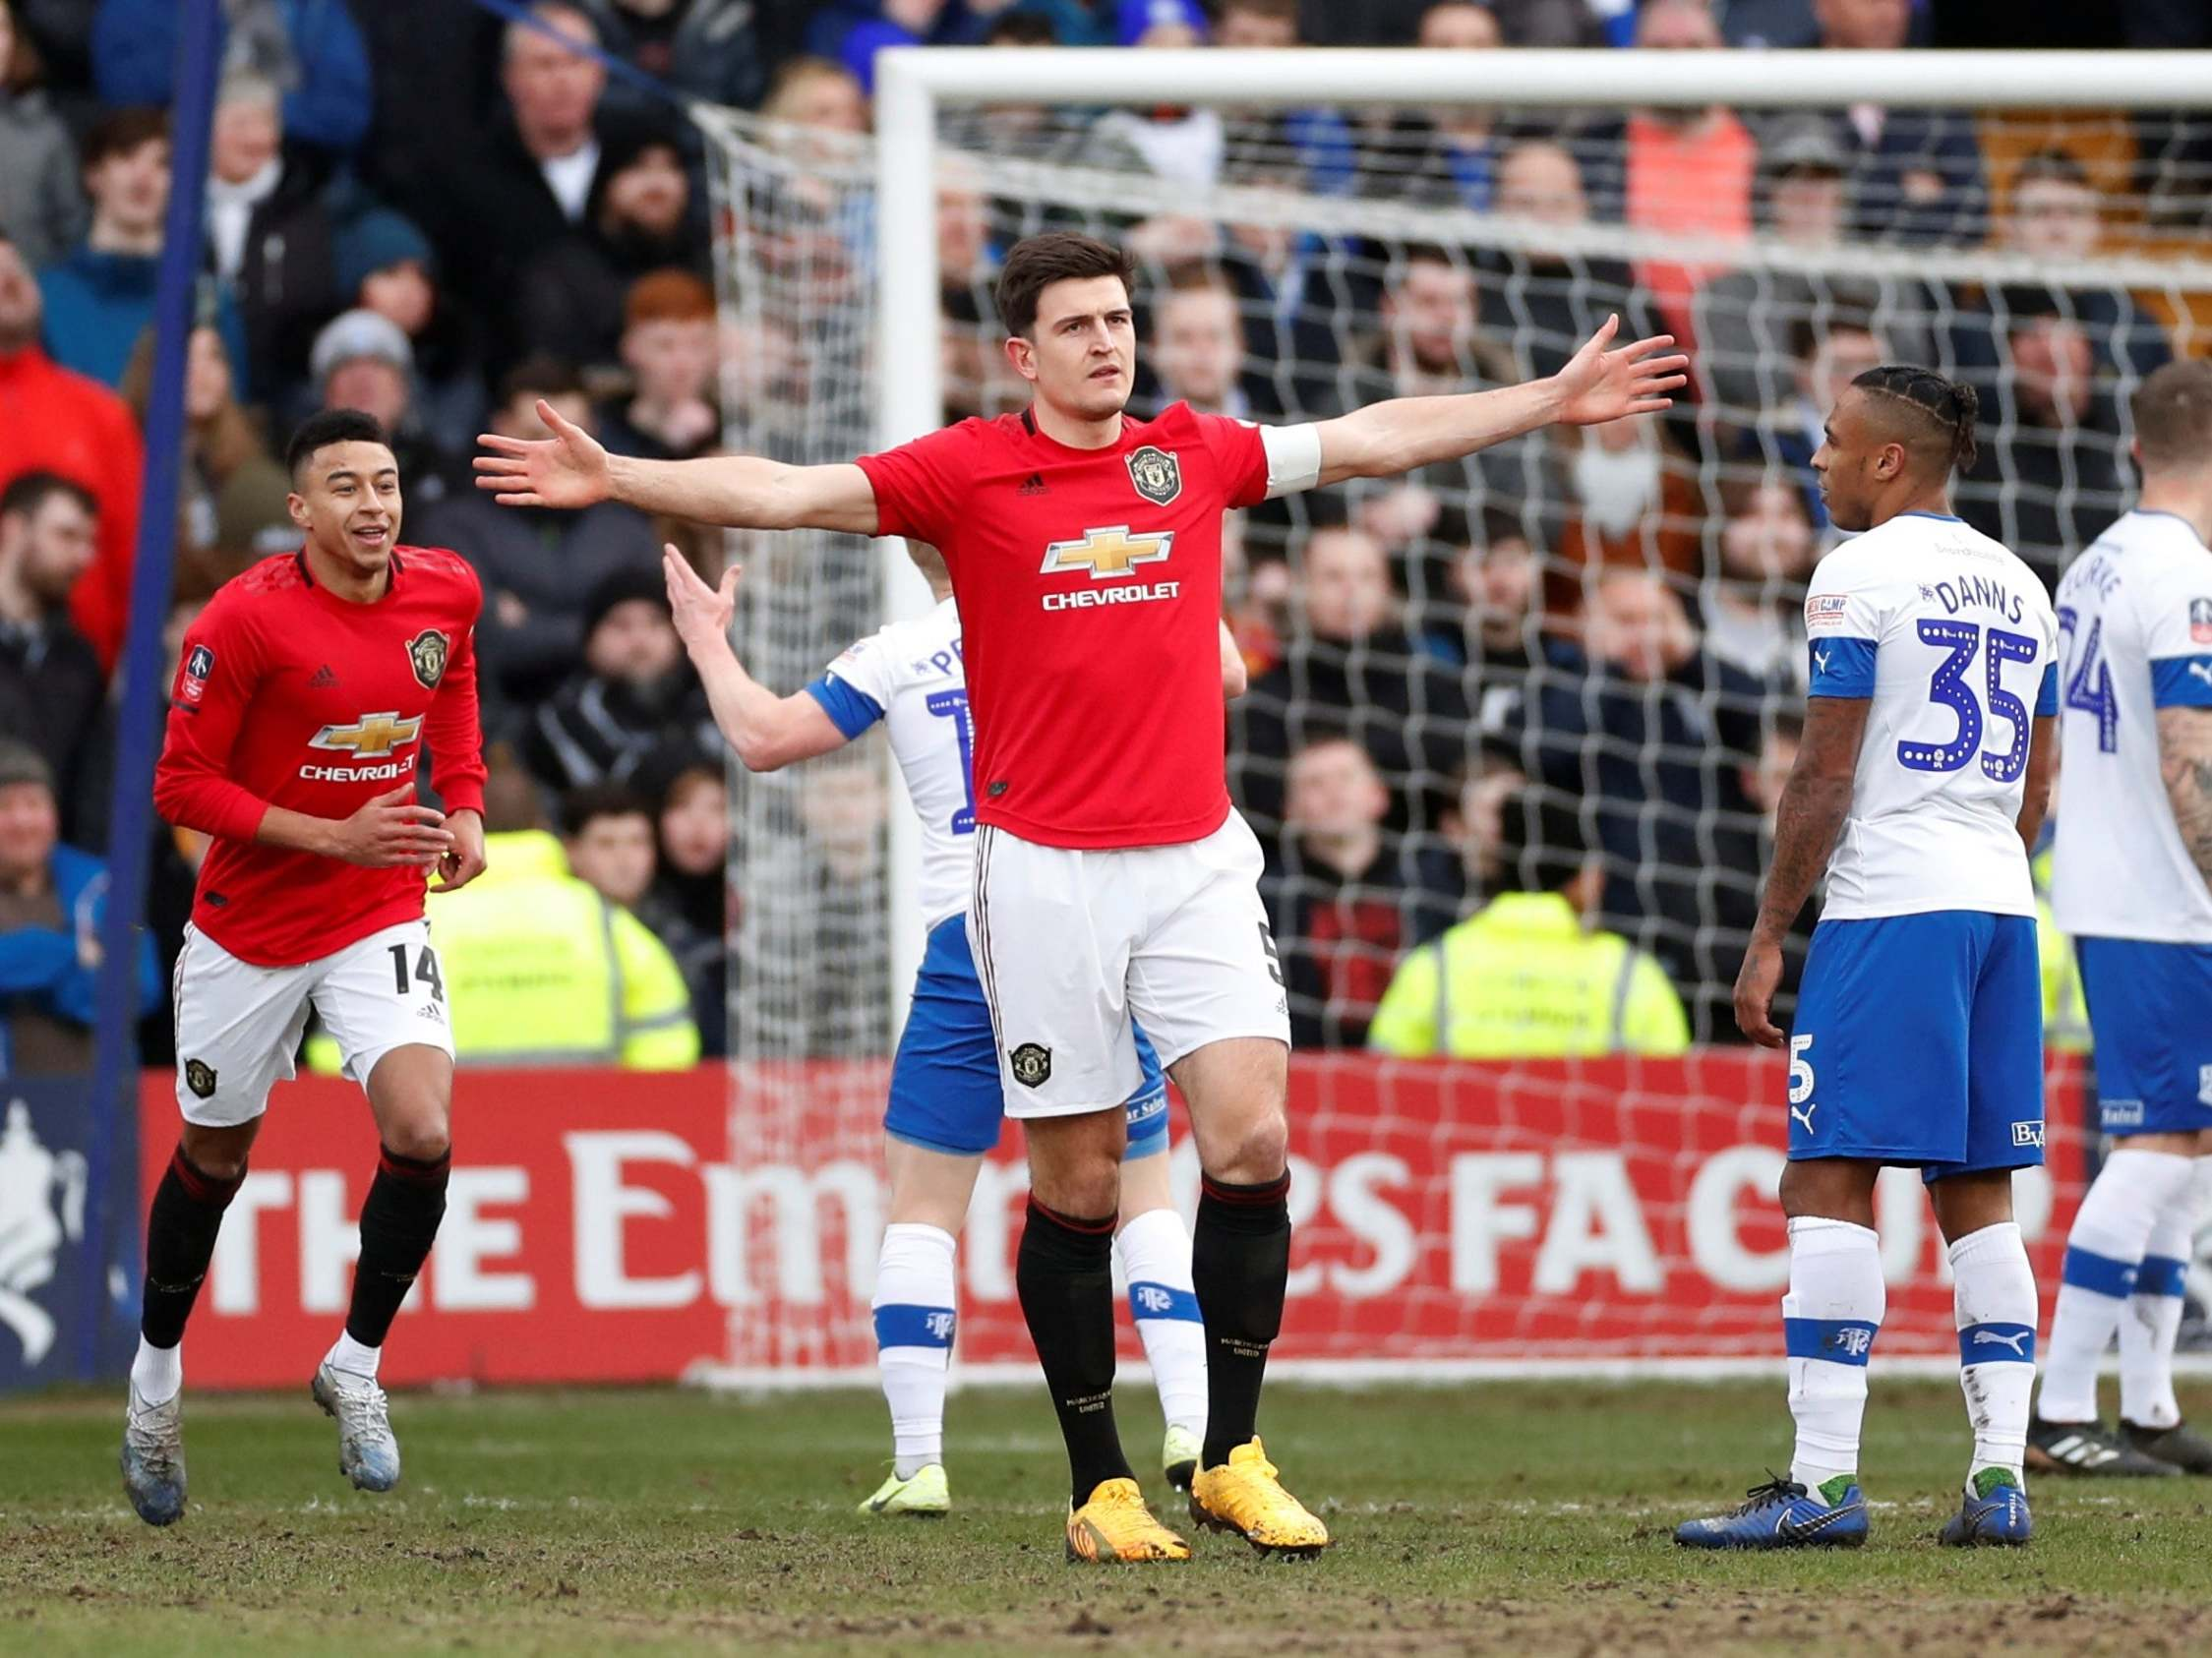 Tranmere vs Manchester United: Player ratings as Harry Maguire delivers captain's performance